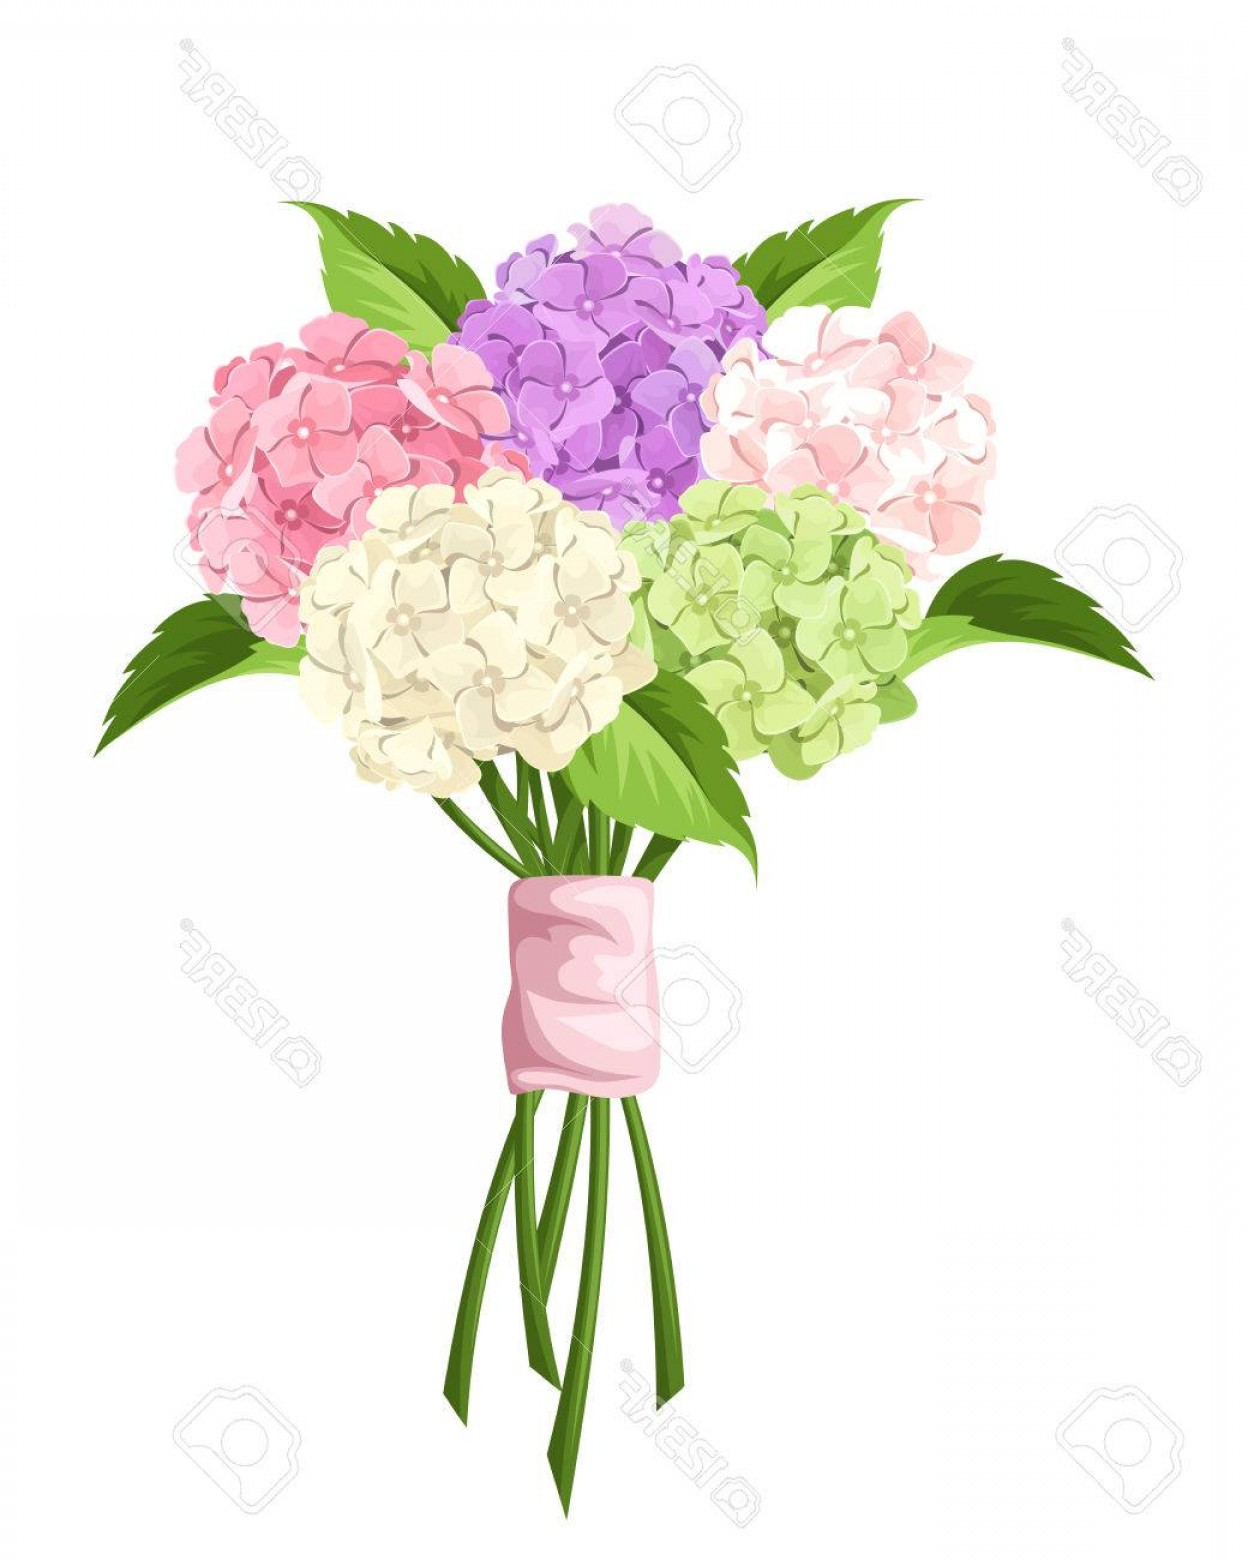 Purple Green And White Vector: Photostock Vector Vector Bouquet Of Pink Purple Green And White Hydrangea Flowers Isolated On A White Background